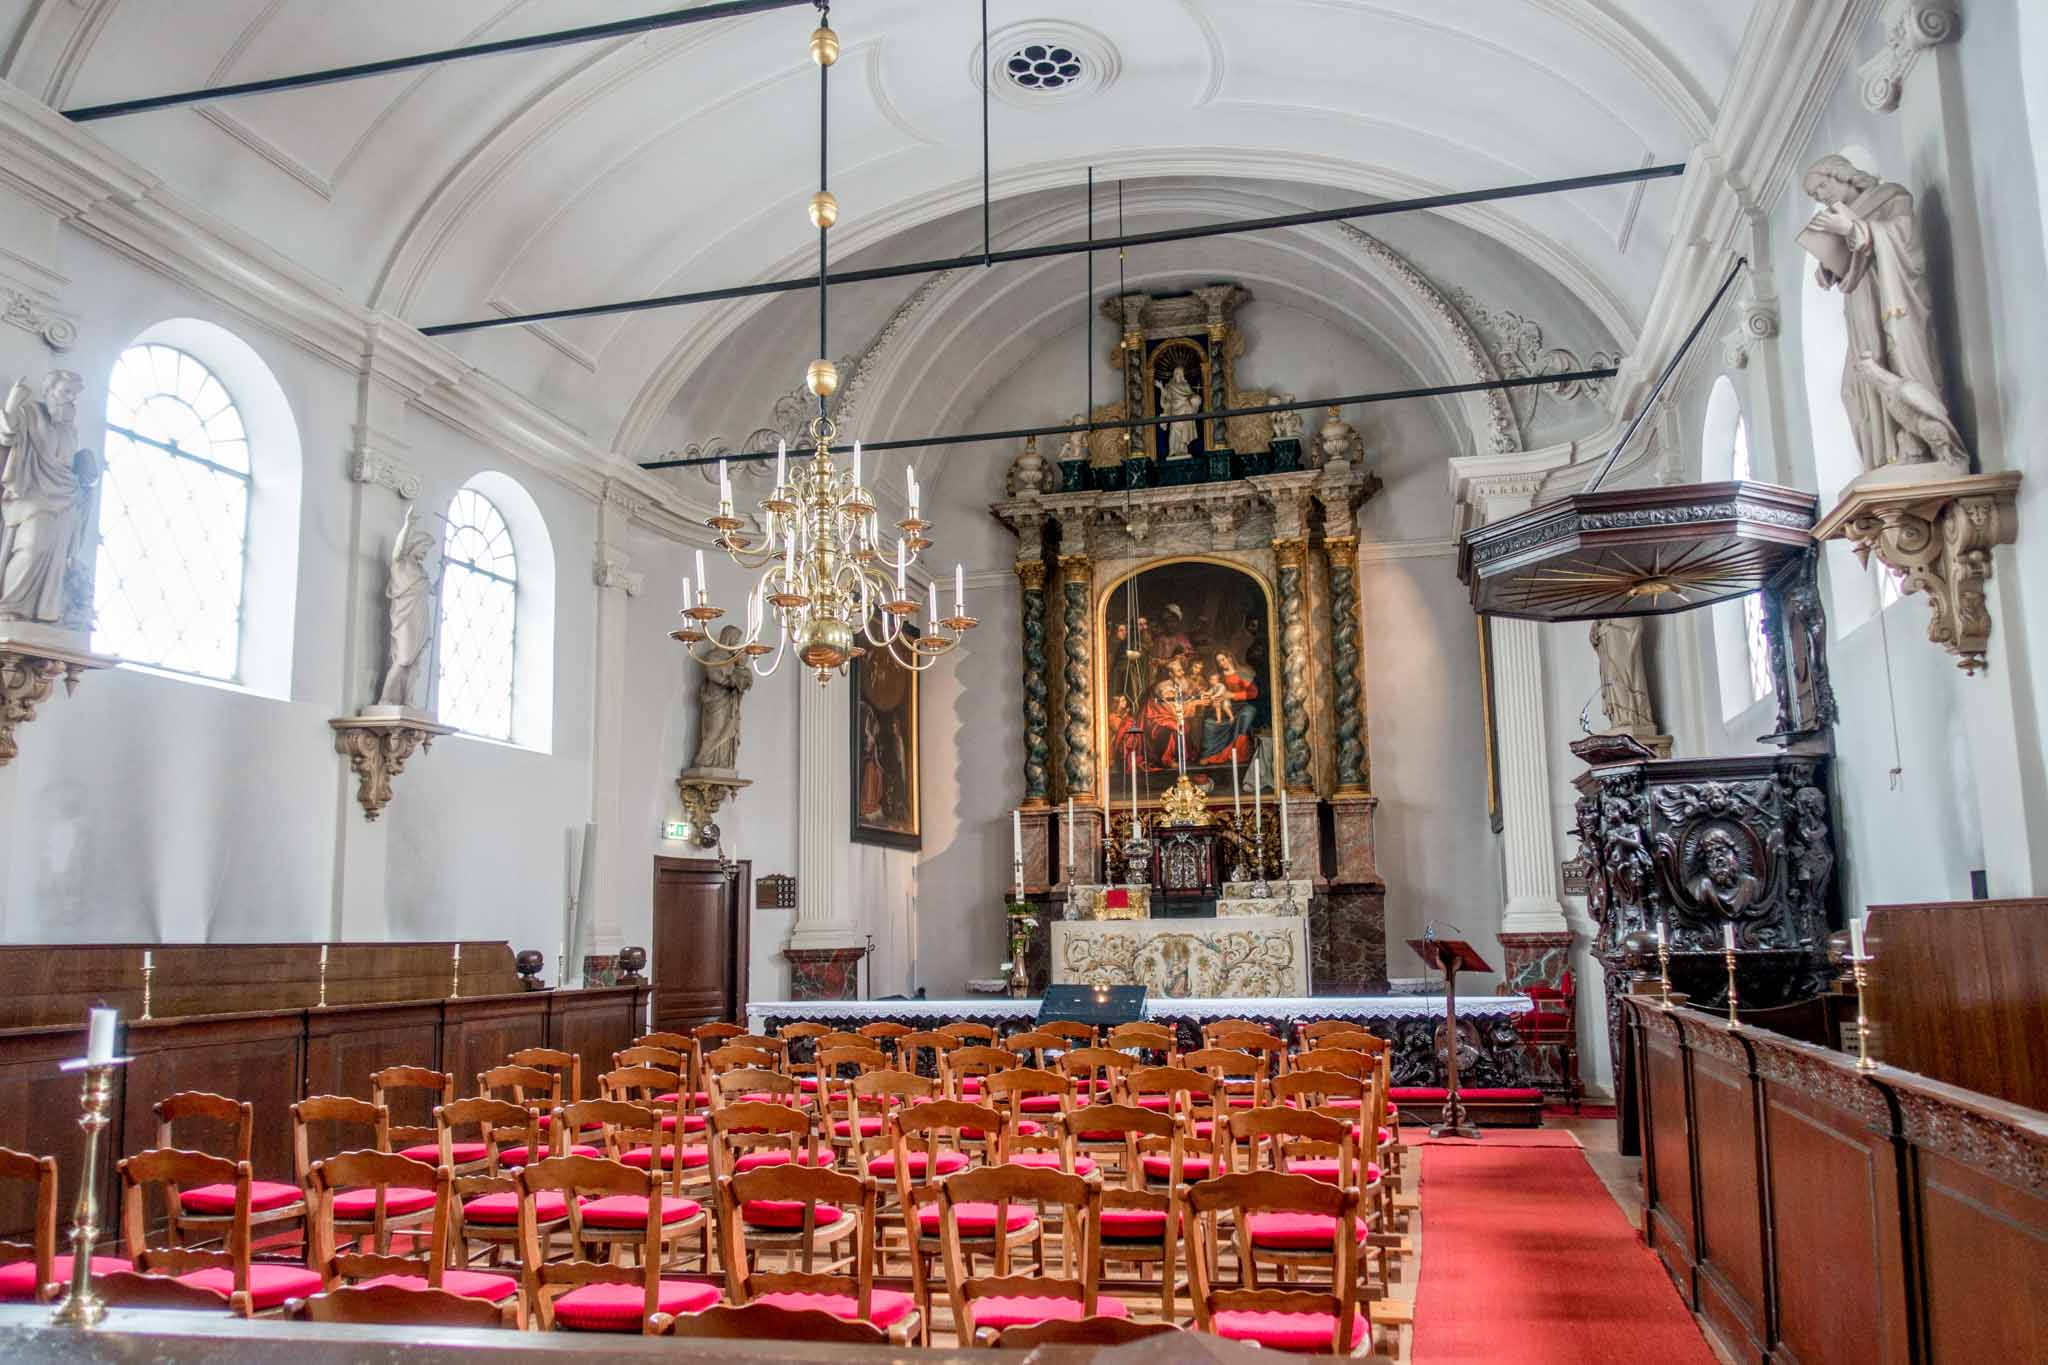 The sanctuary of the hidden Old-Catholic Church, a clandestine church, is one of the interesting places to visit in Gouda